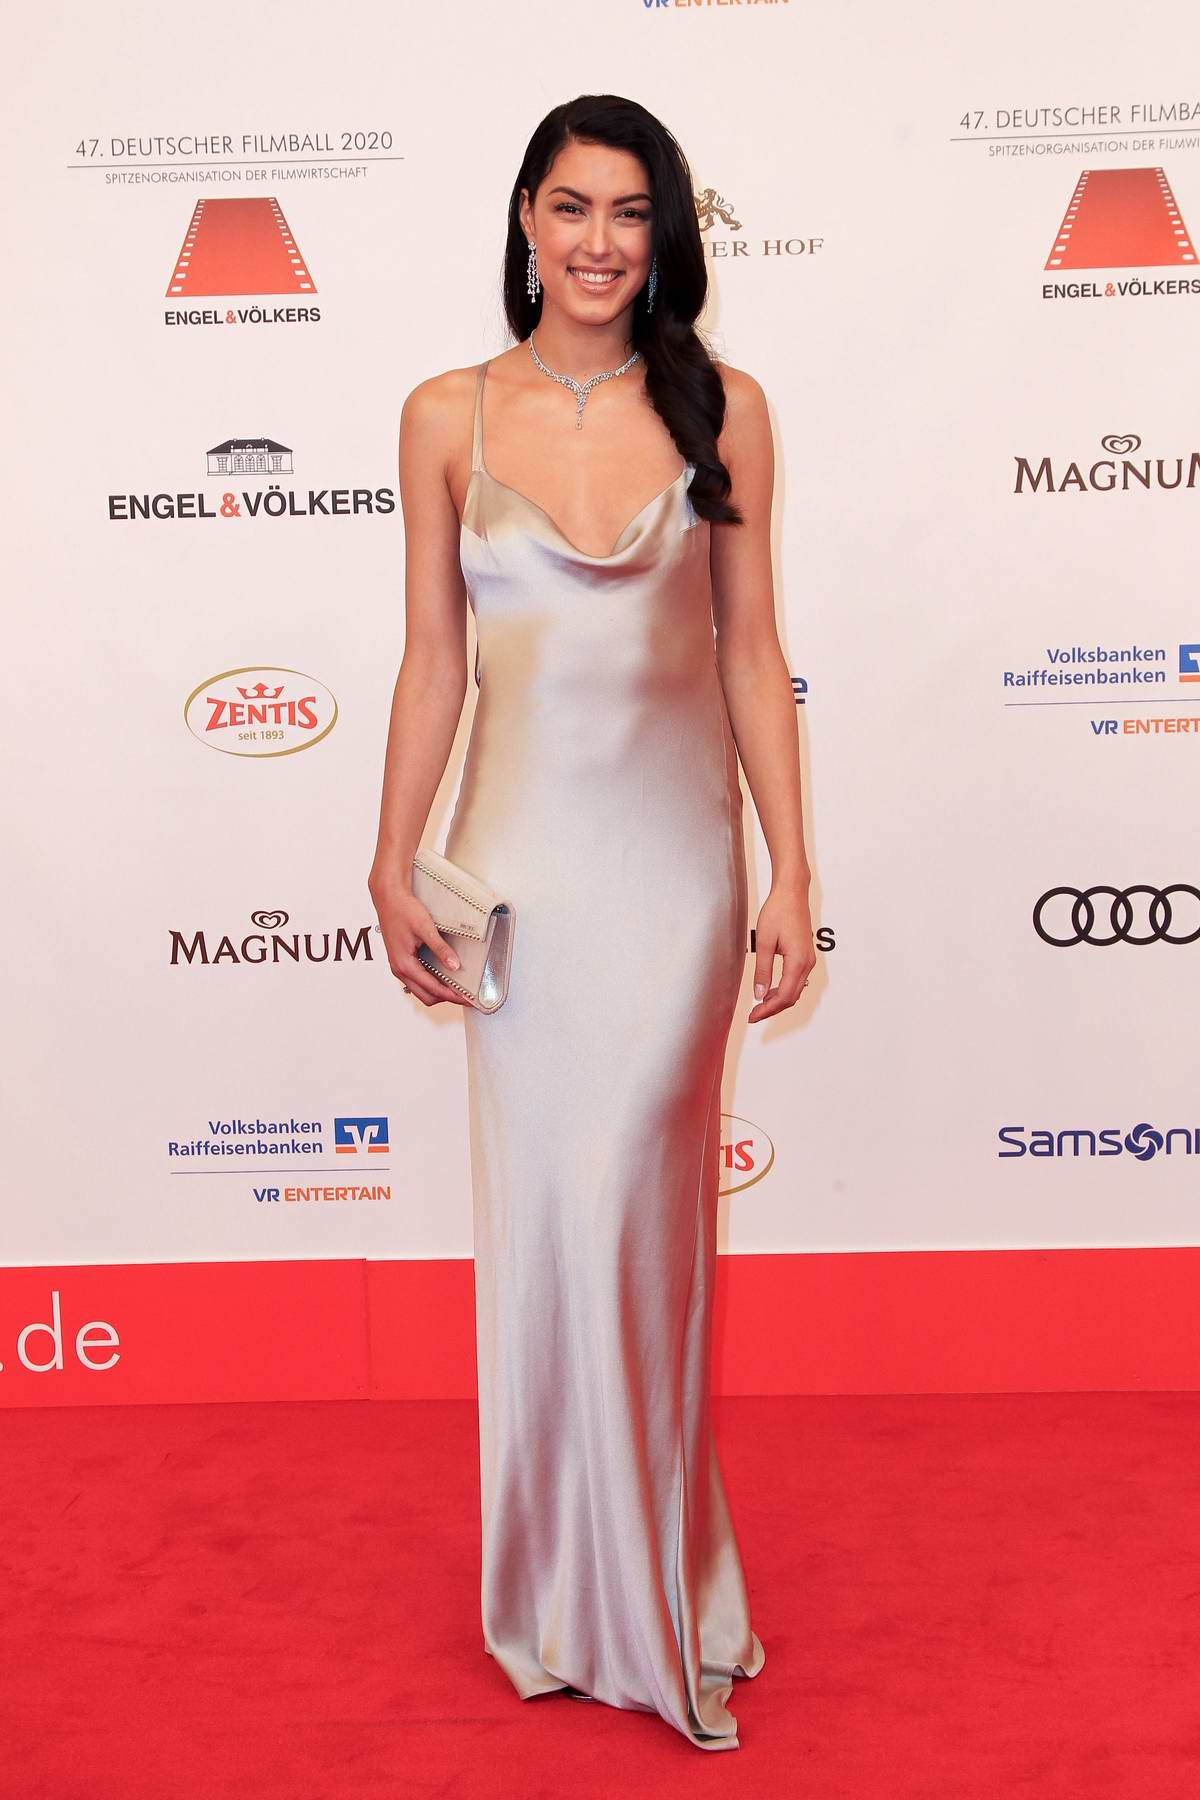 Rebecca Mir attends the 47th German Film Ball at the Hotel Bayerischer Hof in Munich, Germany